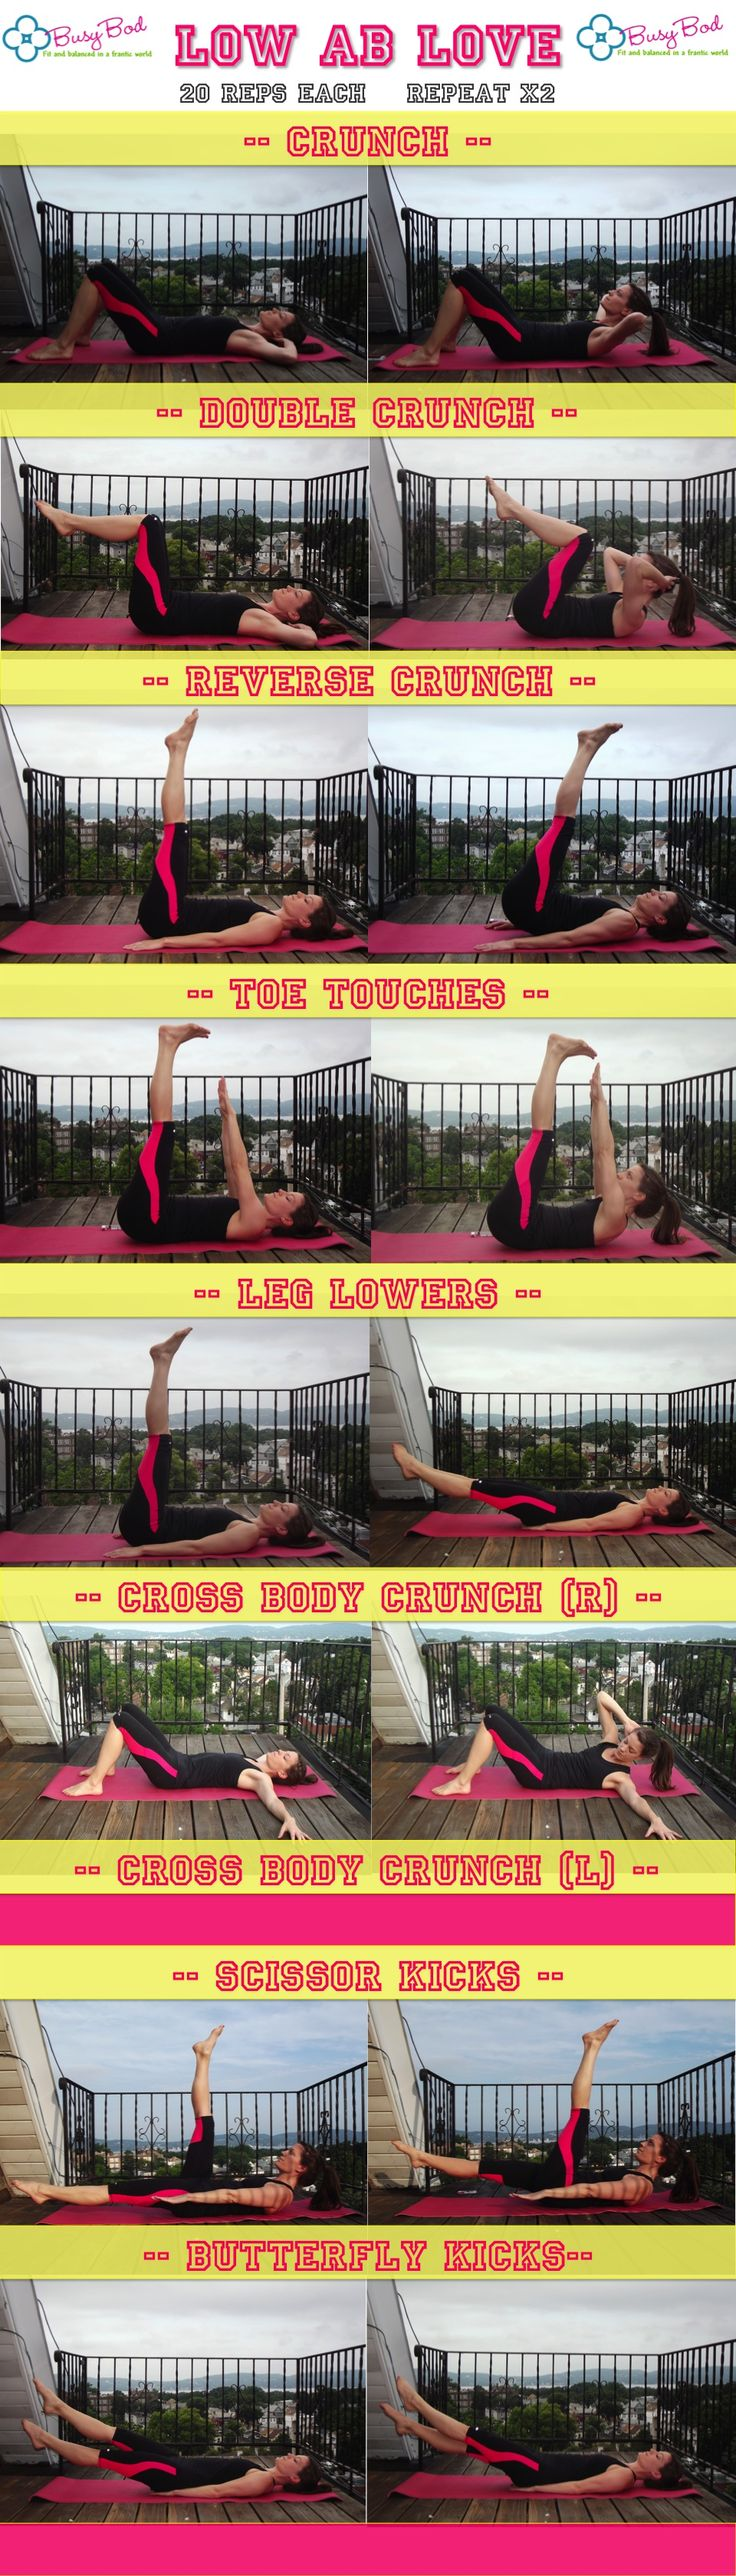 July Abs Challenge – Low Ab LOVE. This could be used with the deck of cards challenge also! @Sara Eriksson Eriksson Eriksson Hays @Anna Totten Totten Totten Hays @Barb Peterson Peterson Peterson Sisson